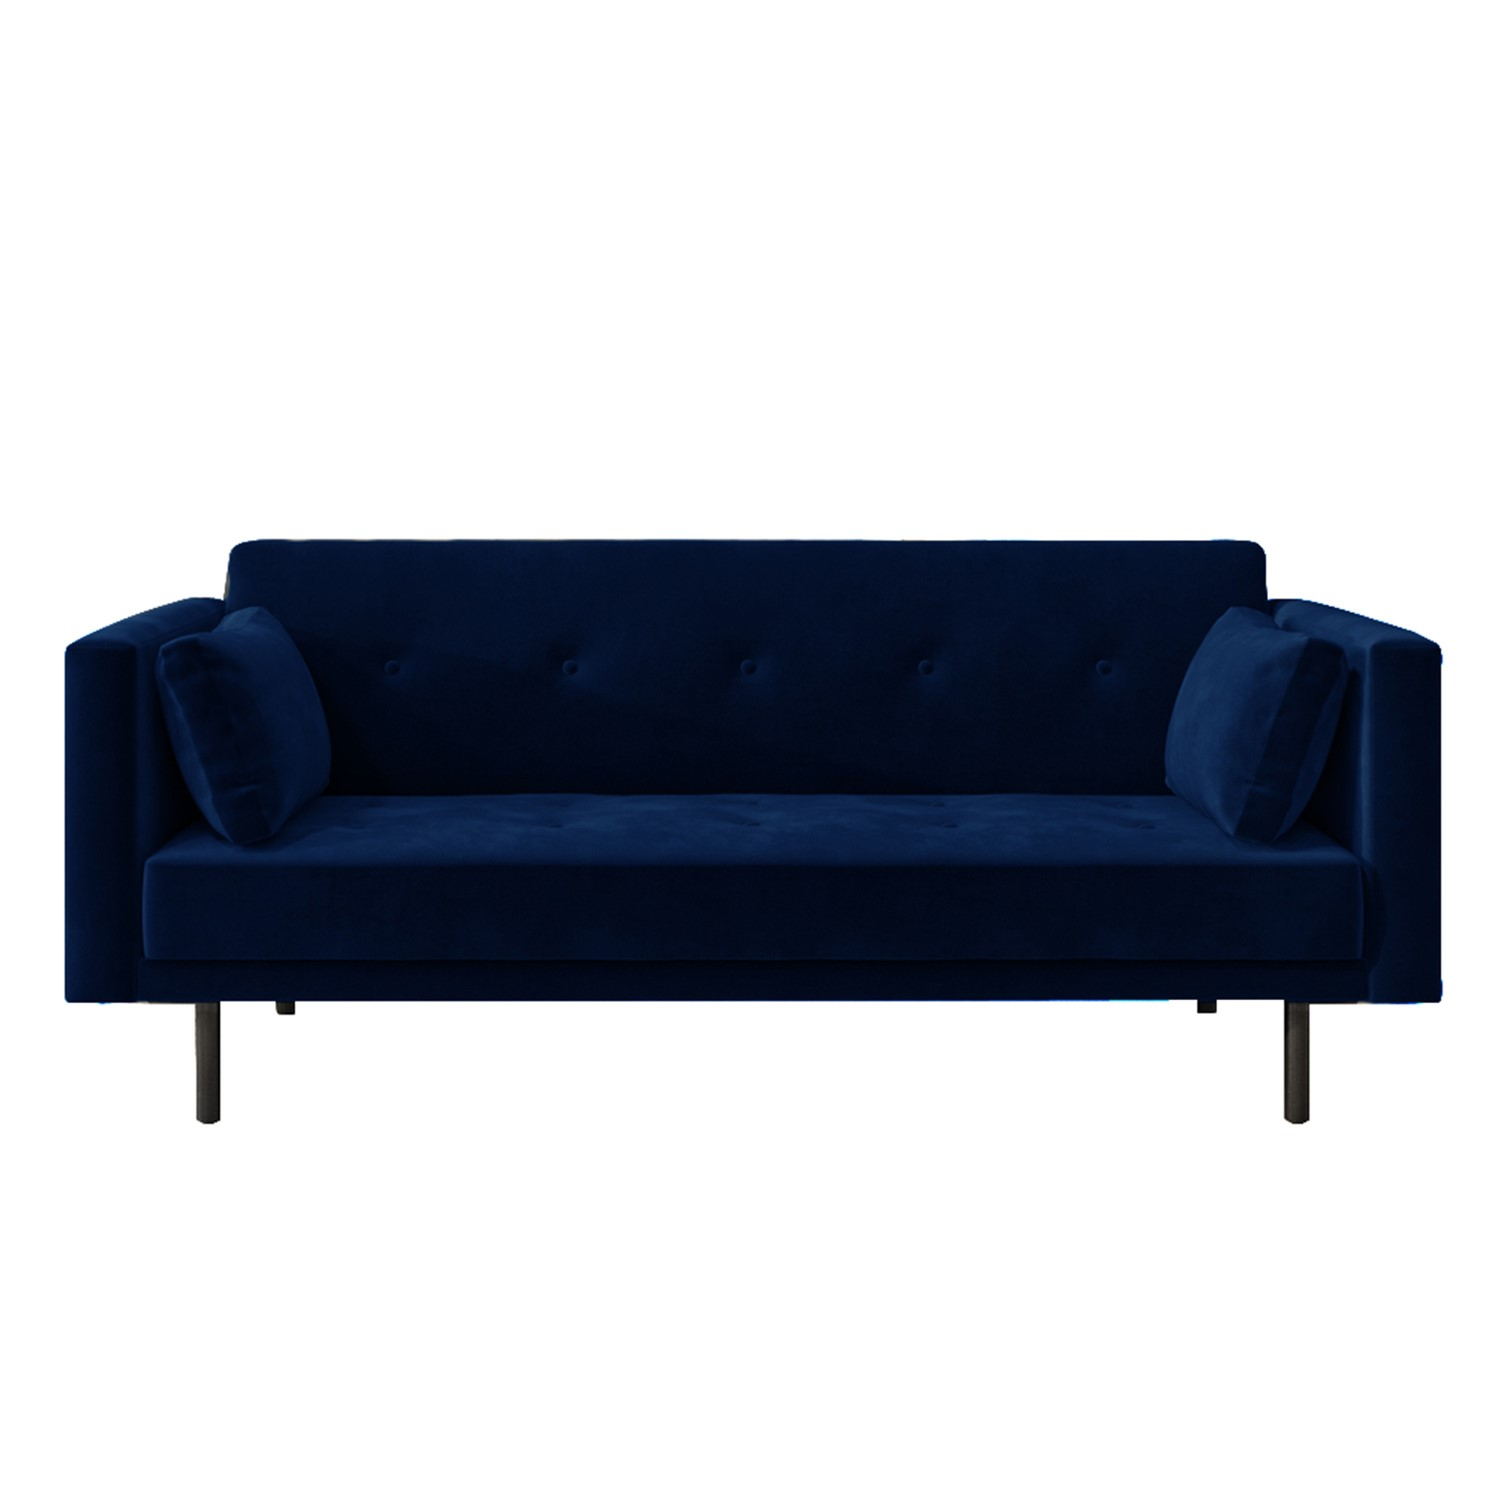 Picture of: Velvet Sofa Bed In Navy Blue With Buttons Seats 3 Rory Furniture123